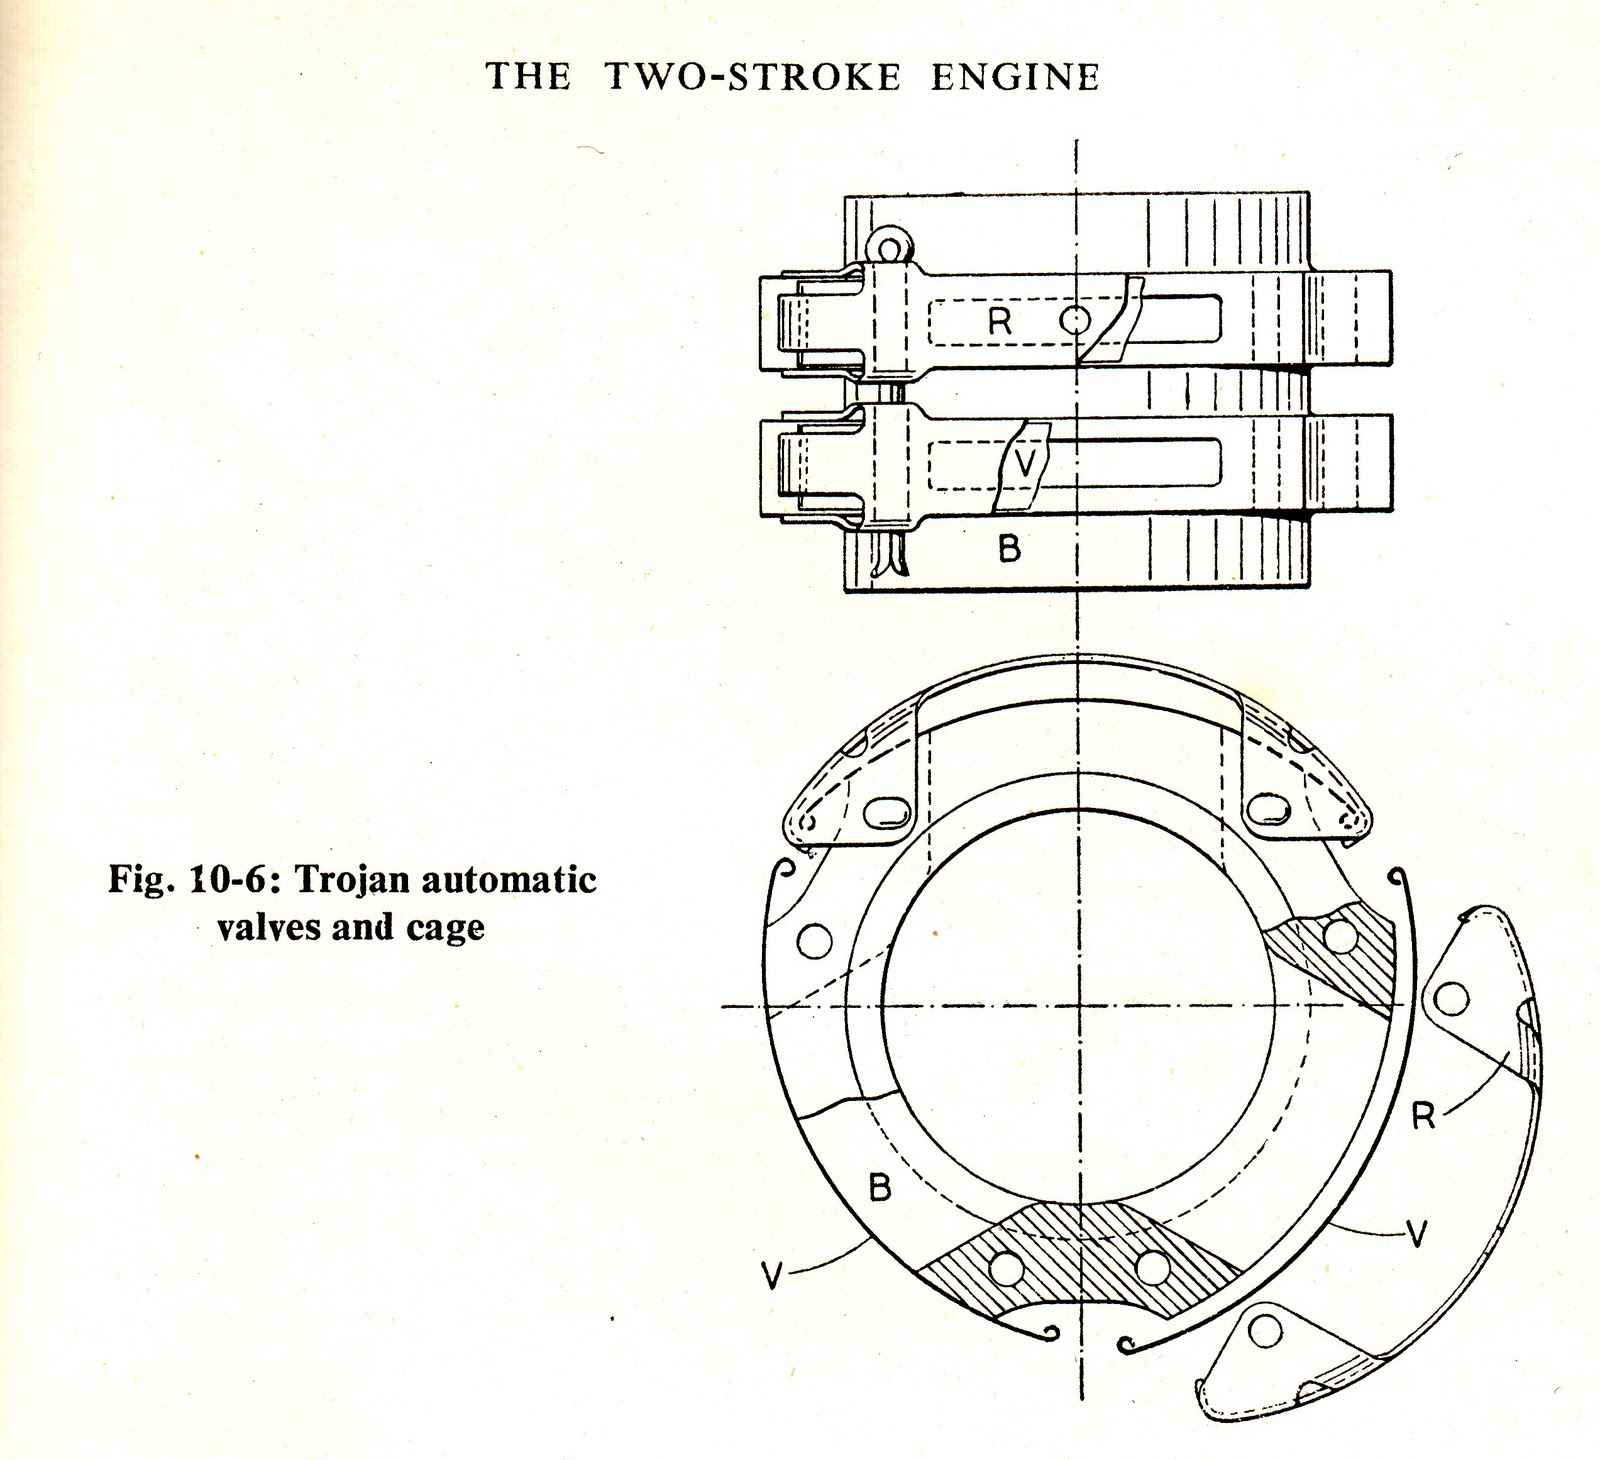 small resolution of trojan automatic valves and cage